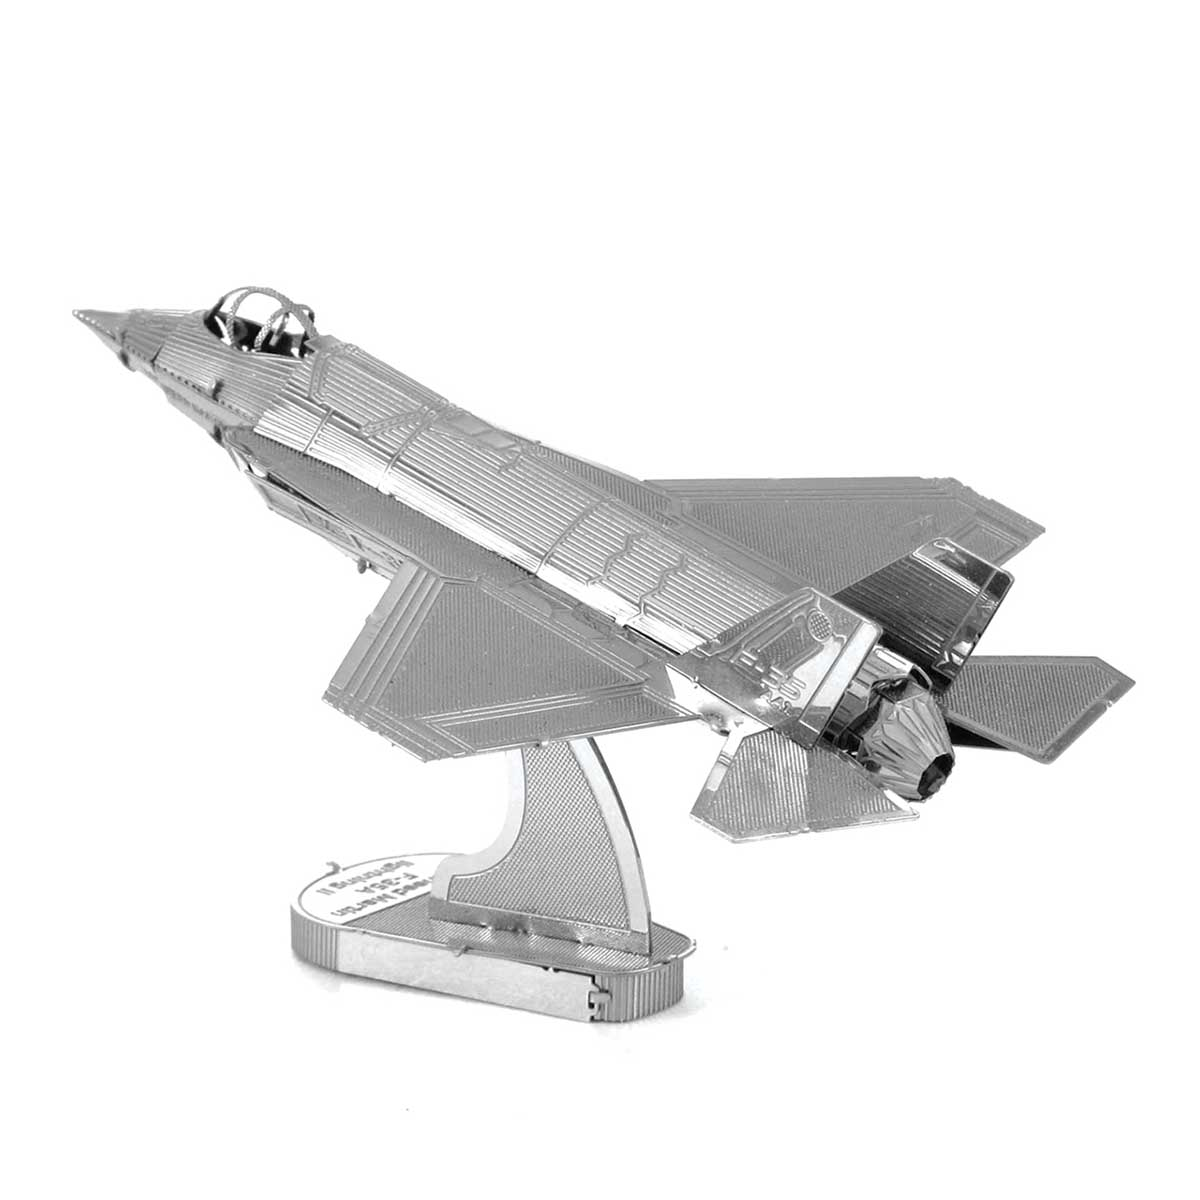 F-35A Lightning II Planes 3D Puzzle